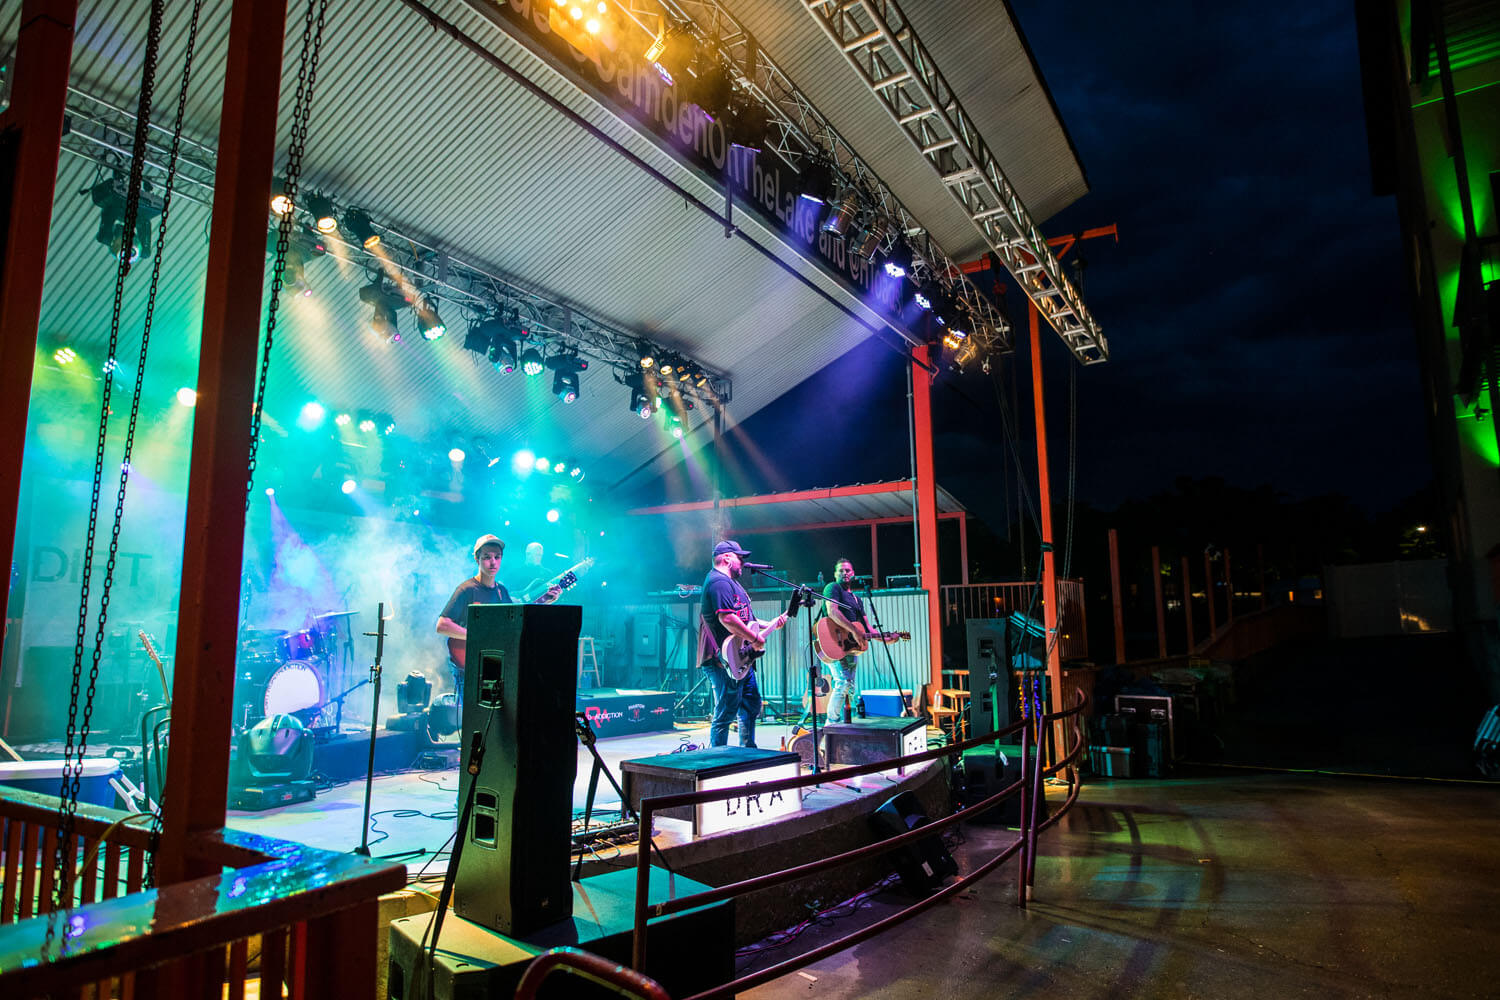 Live music being performed on stage at Toad Island on Lake of the Ozarks